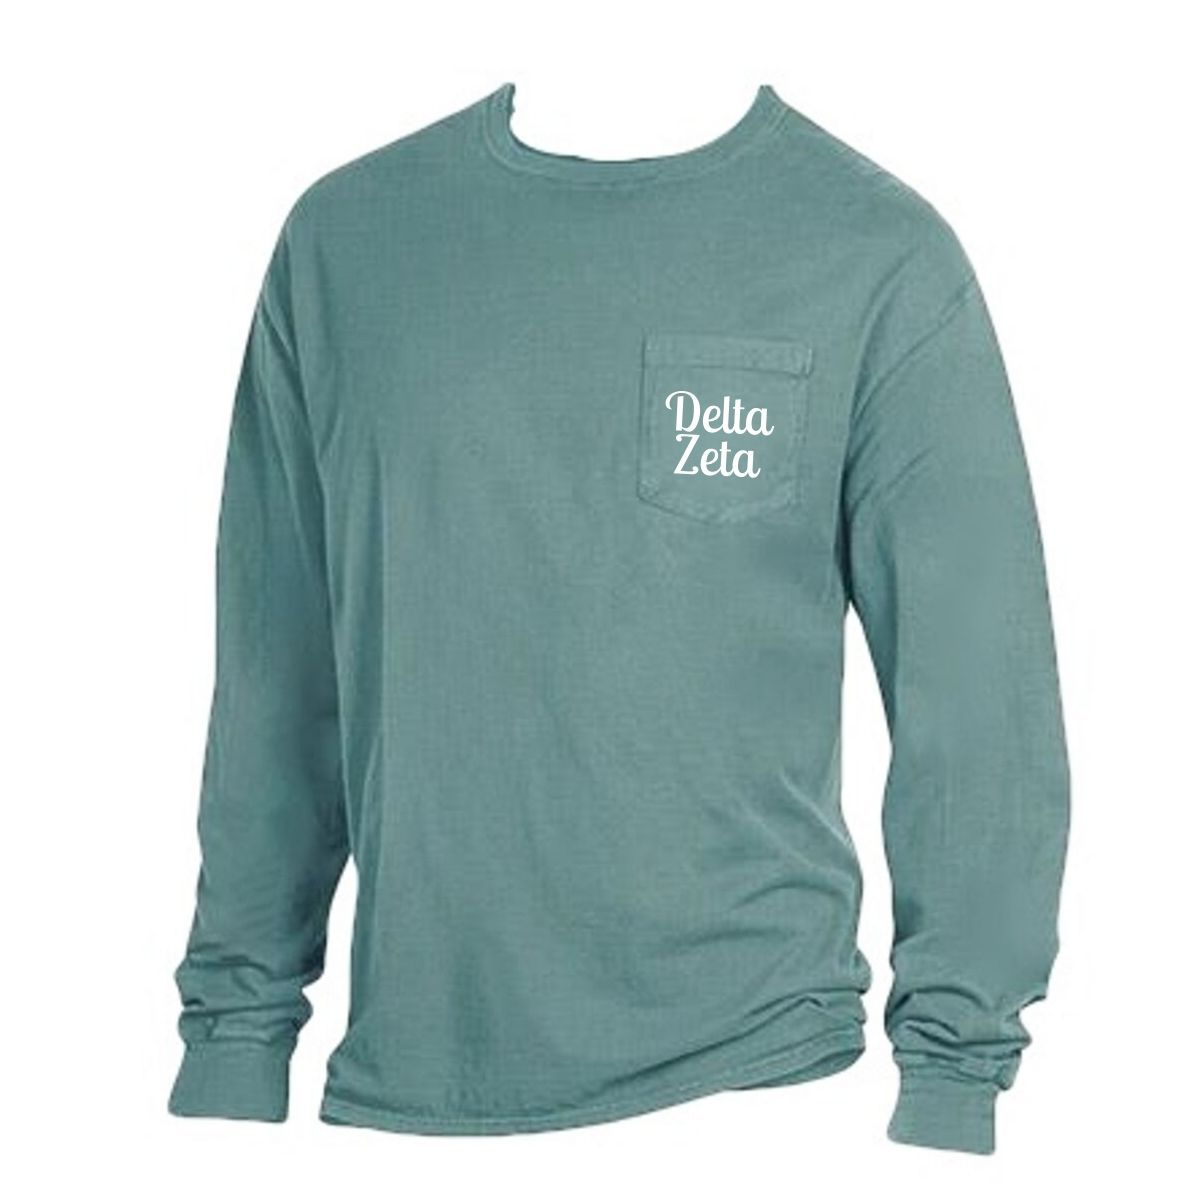 Green Delta Zeta Long Sleeve Shirt with Greek Words on Pocket in cute retro style.